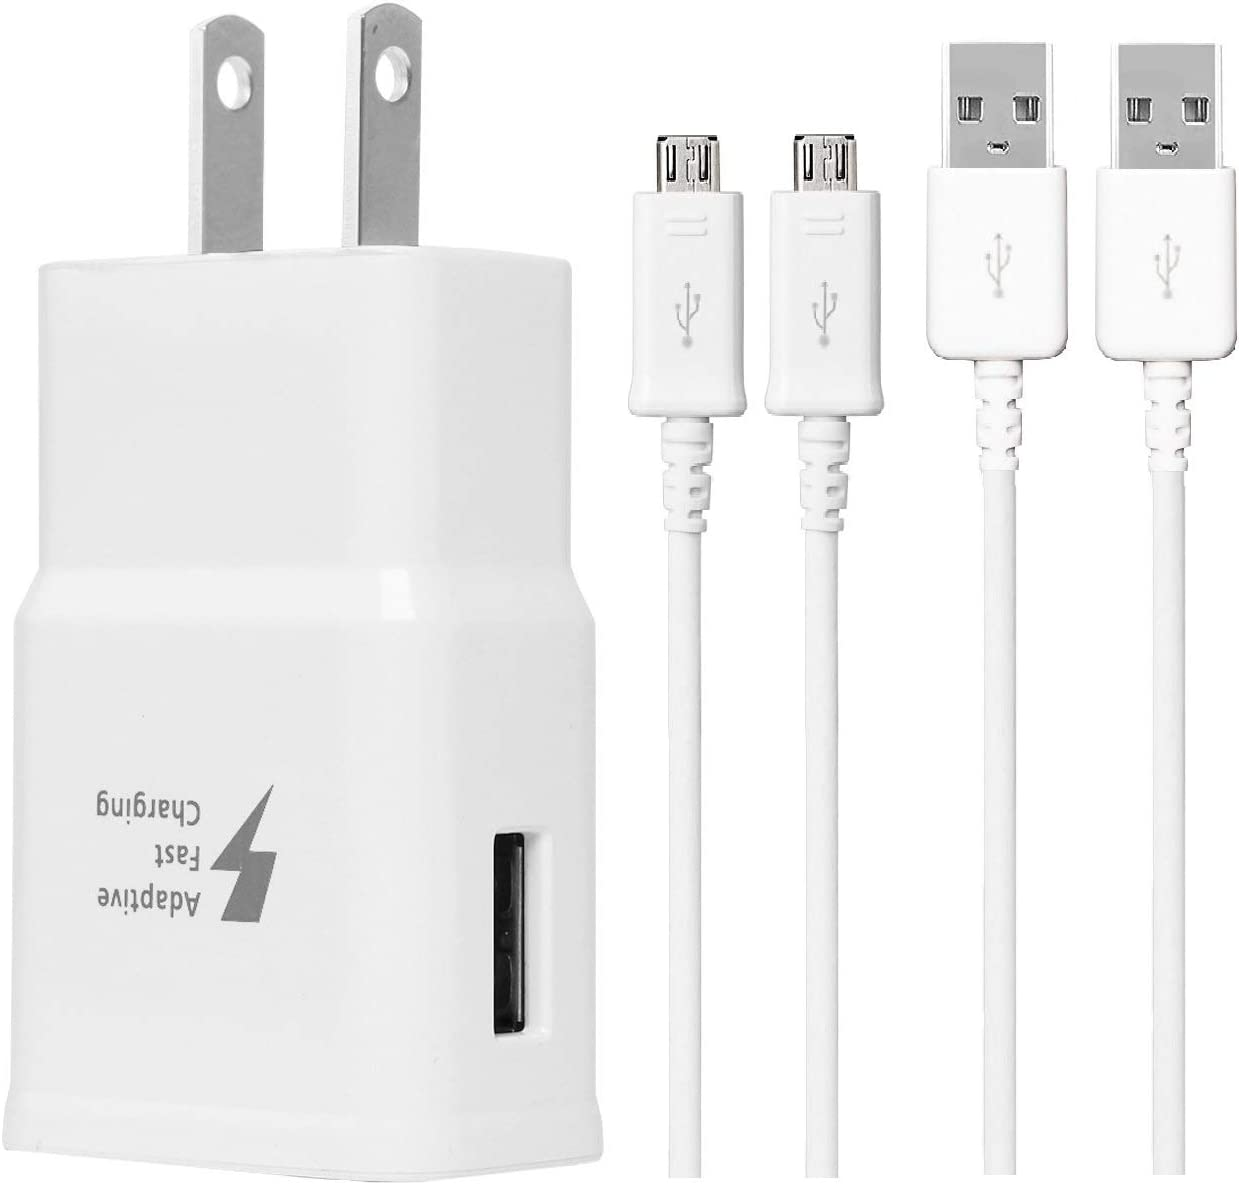 Adaptive Fast Charger,Made for Samsung Galaxy Tab A 10.1 (2016) Tablet,Tab E 8.0 Tablet,S7,S7 Edge S6,S6,Note 4 Tab S 10.5,A 9.7,4, Home Wall Charger + USB Cable